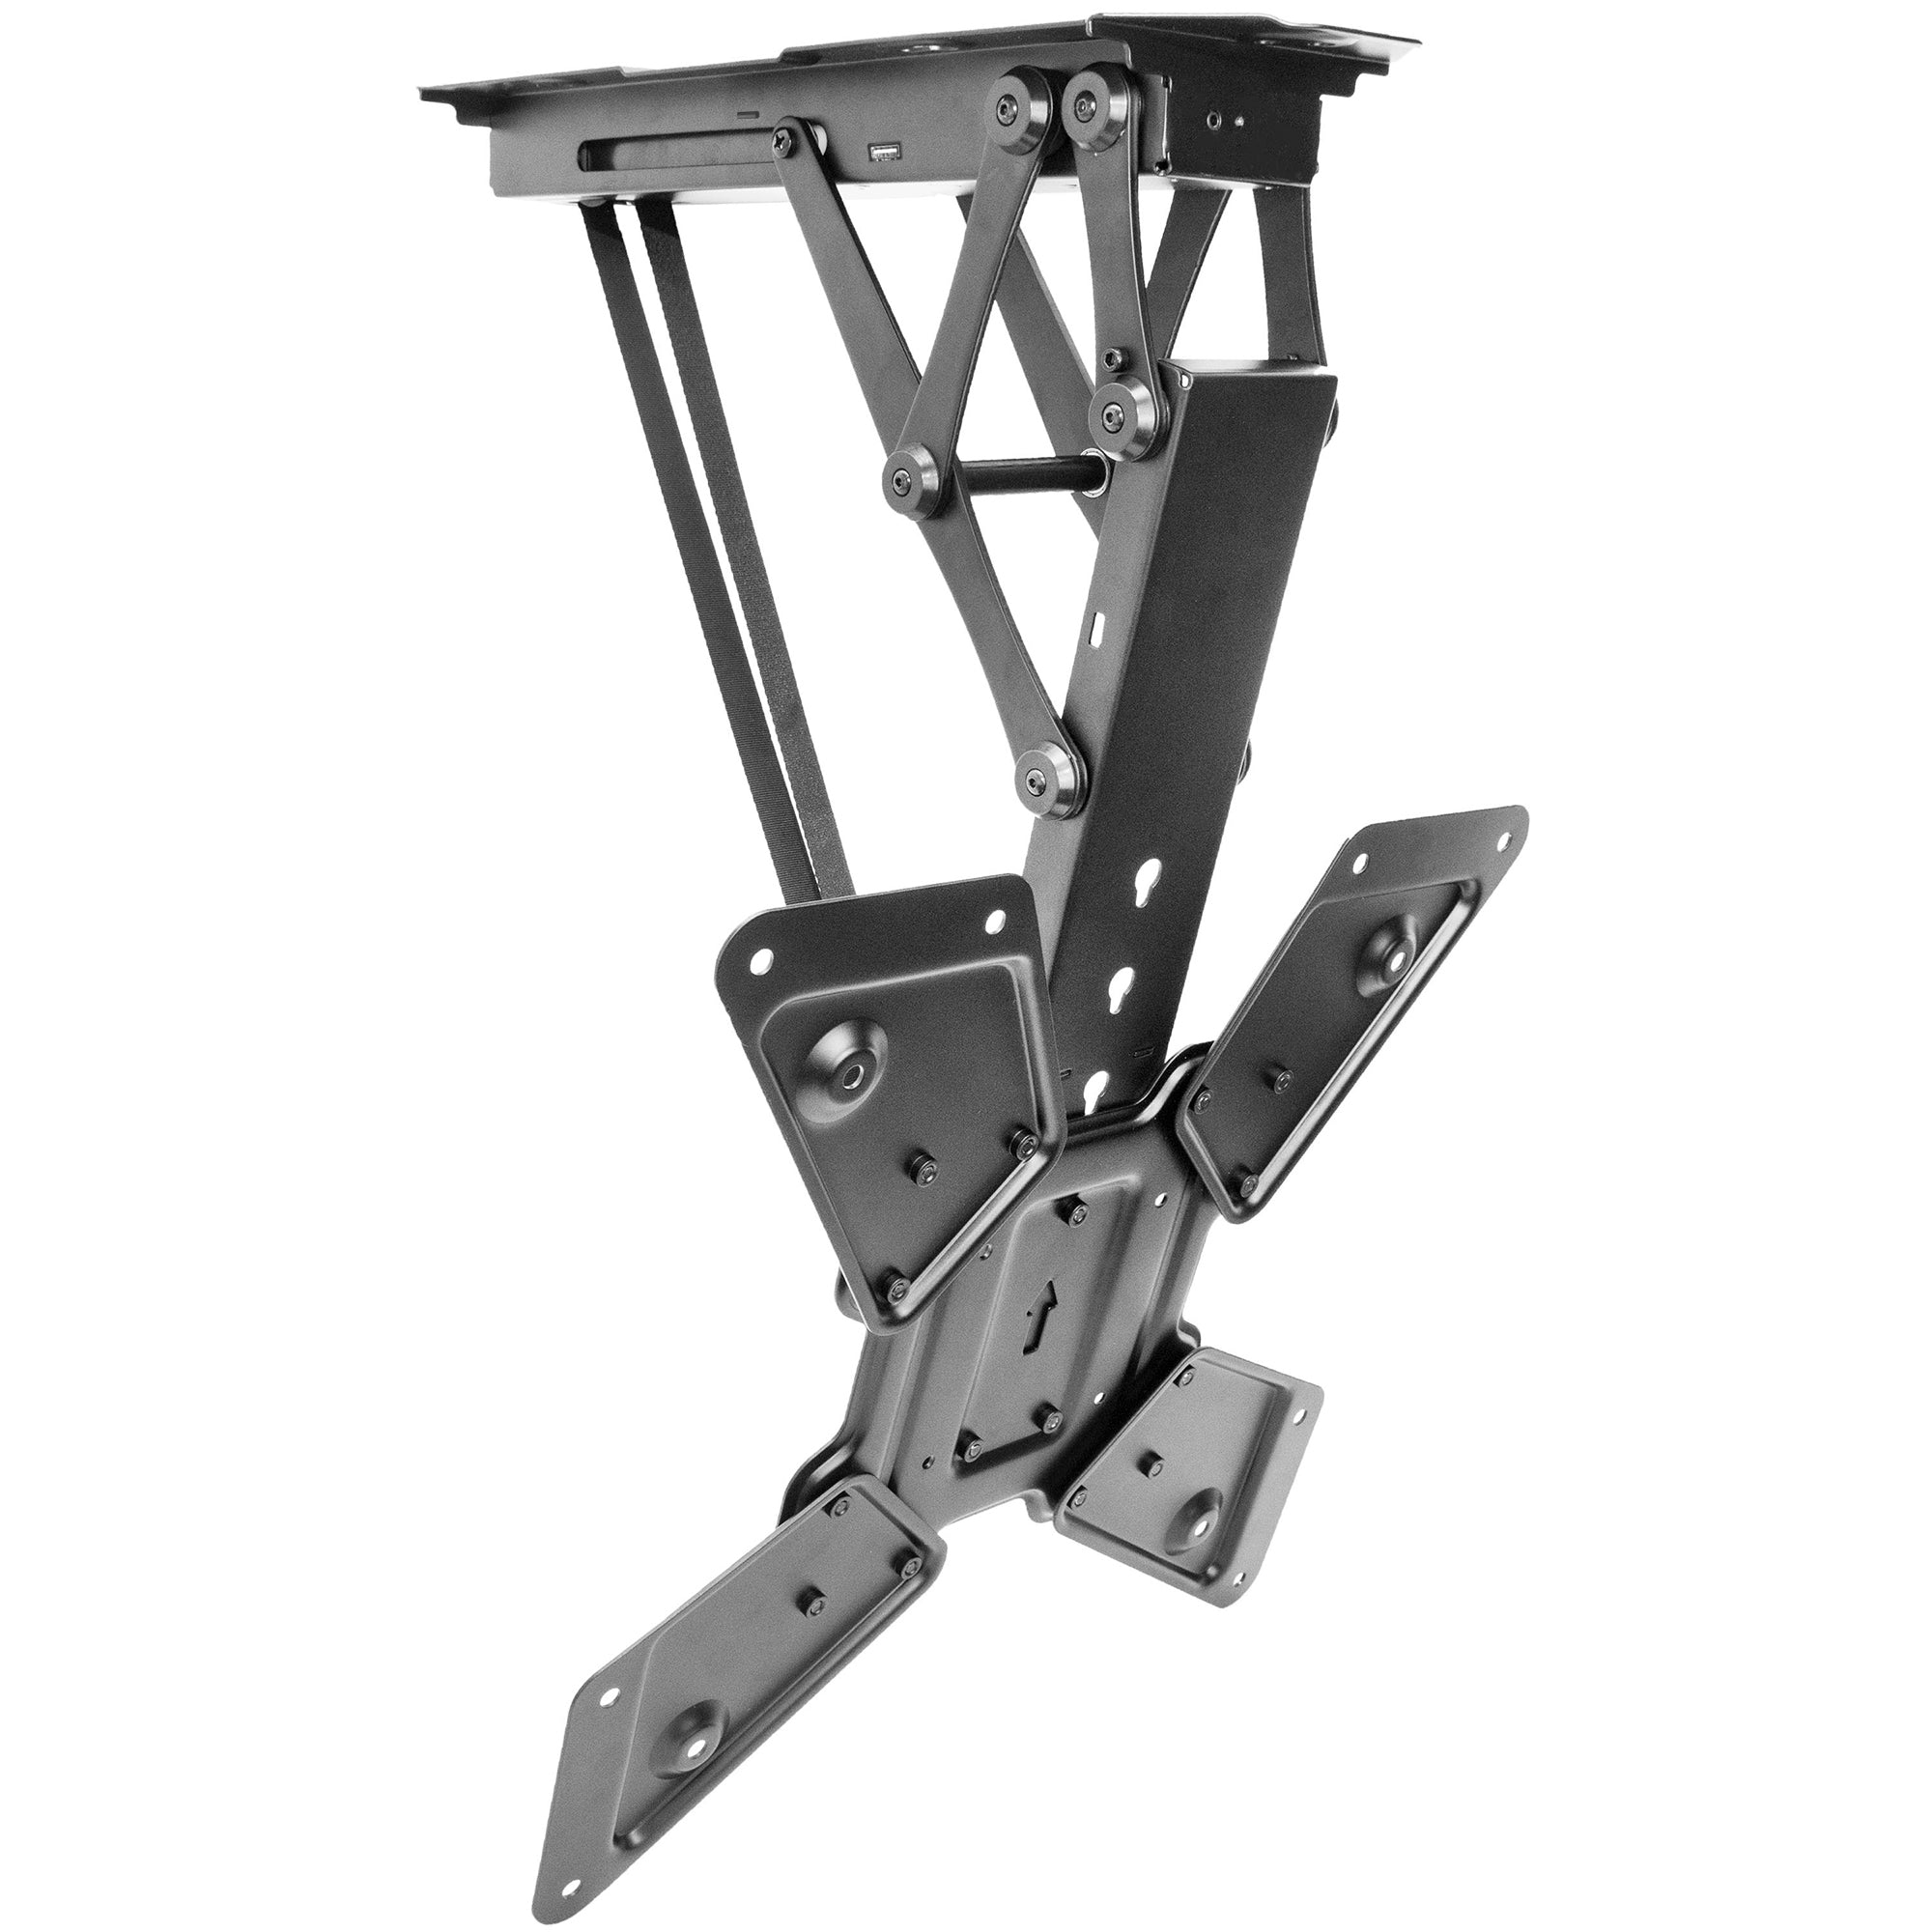 mount e fd55 vivo electric motorized flip down pitched ForMotorized Flip Down Tv Mount